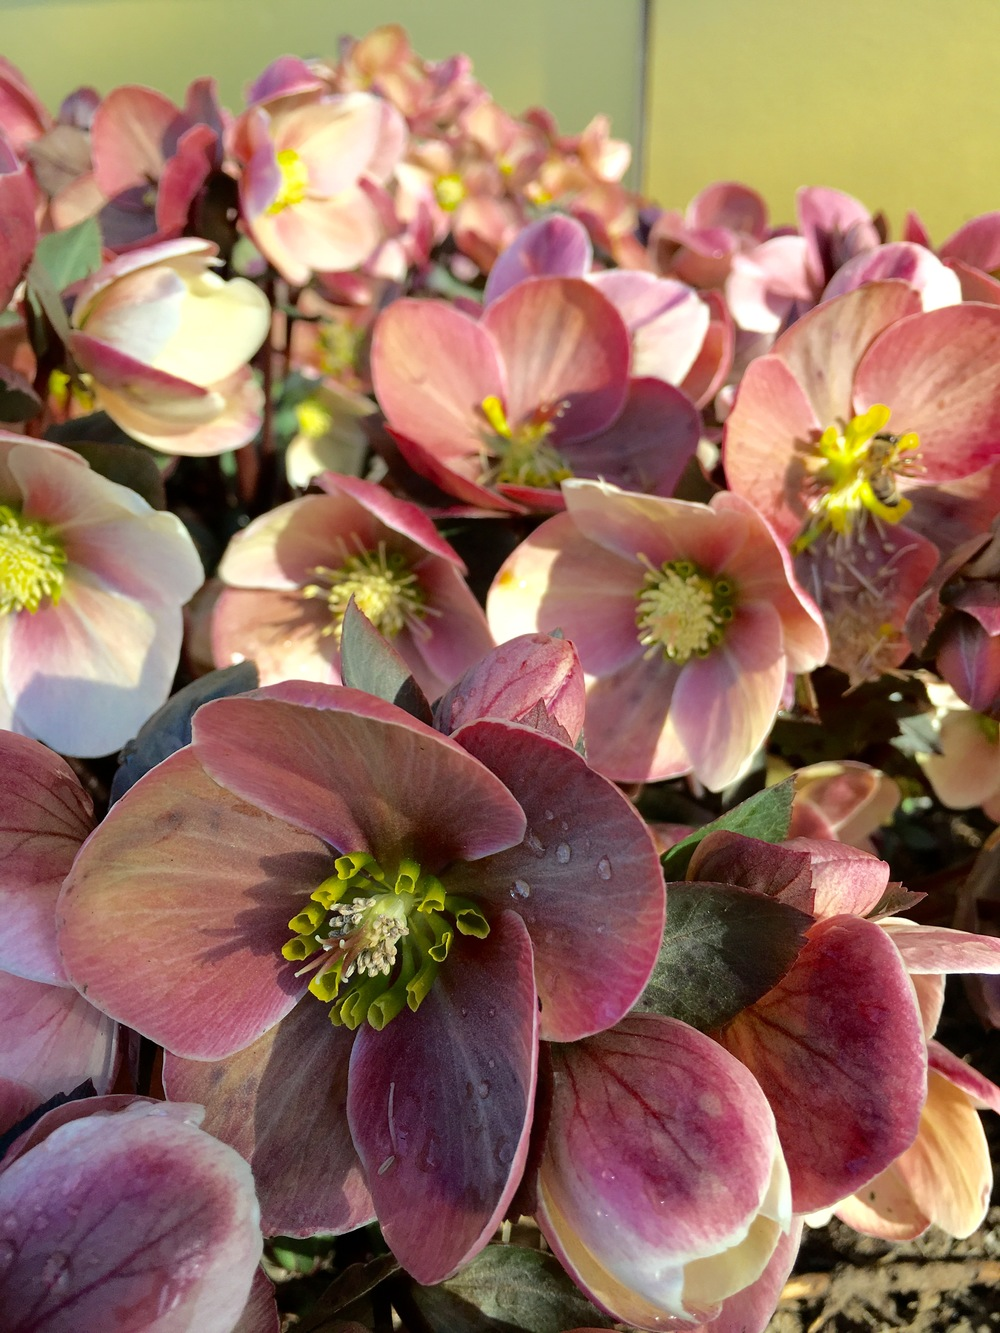 Helleborus x ballardiae 'HGC Pink Frost', a hybrid of H. lividus and the Christmas rose, H. Niger